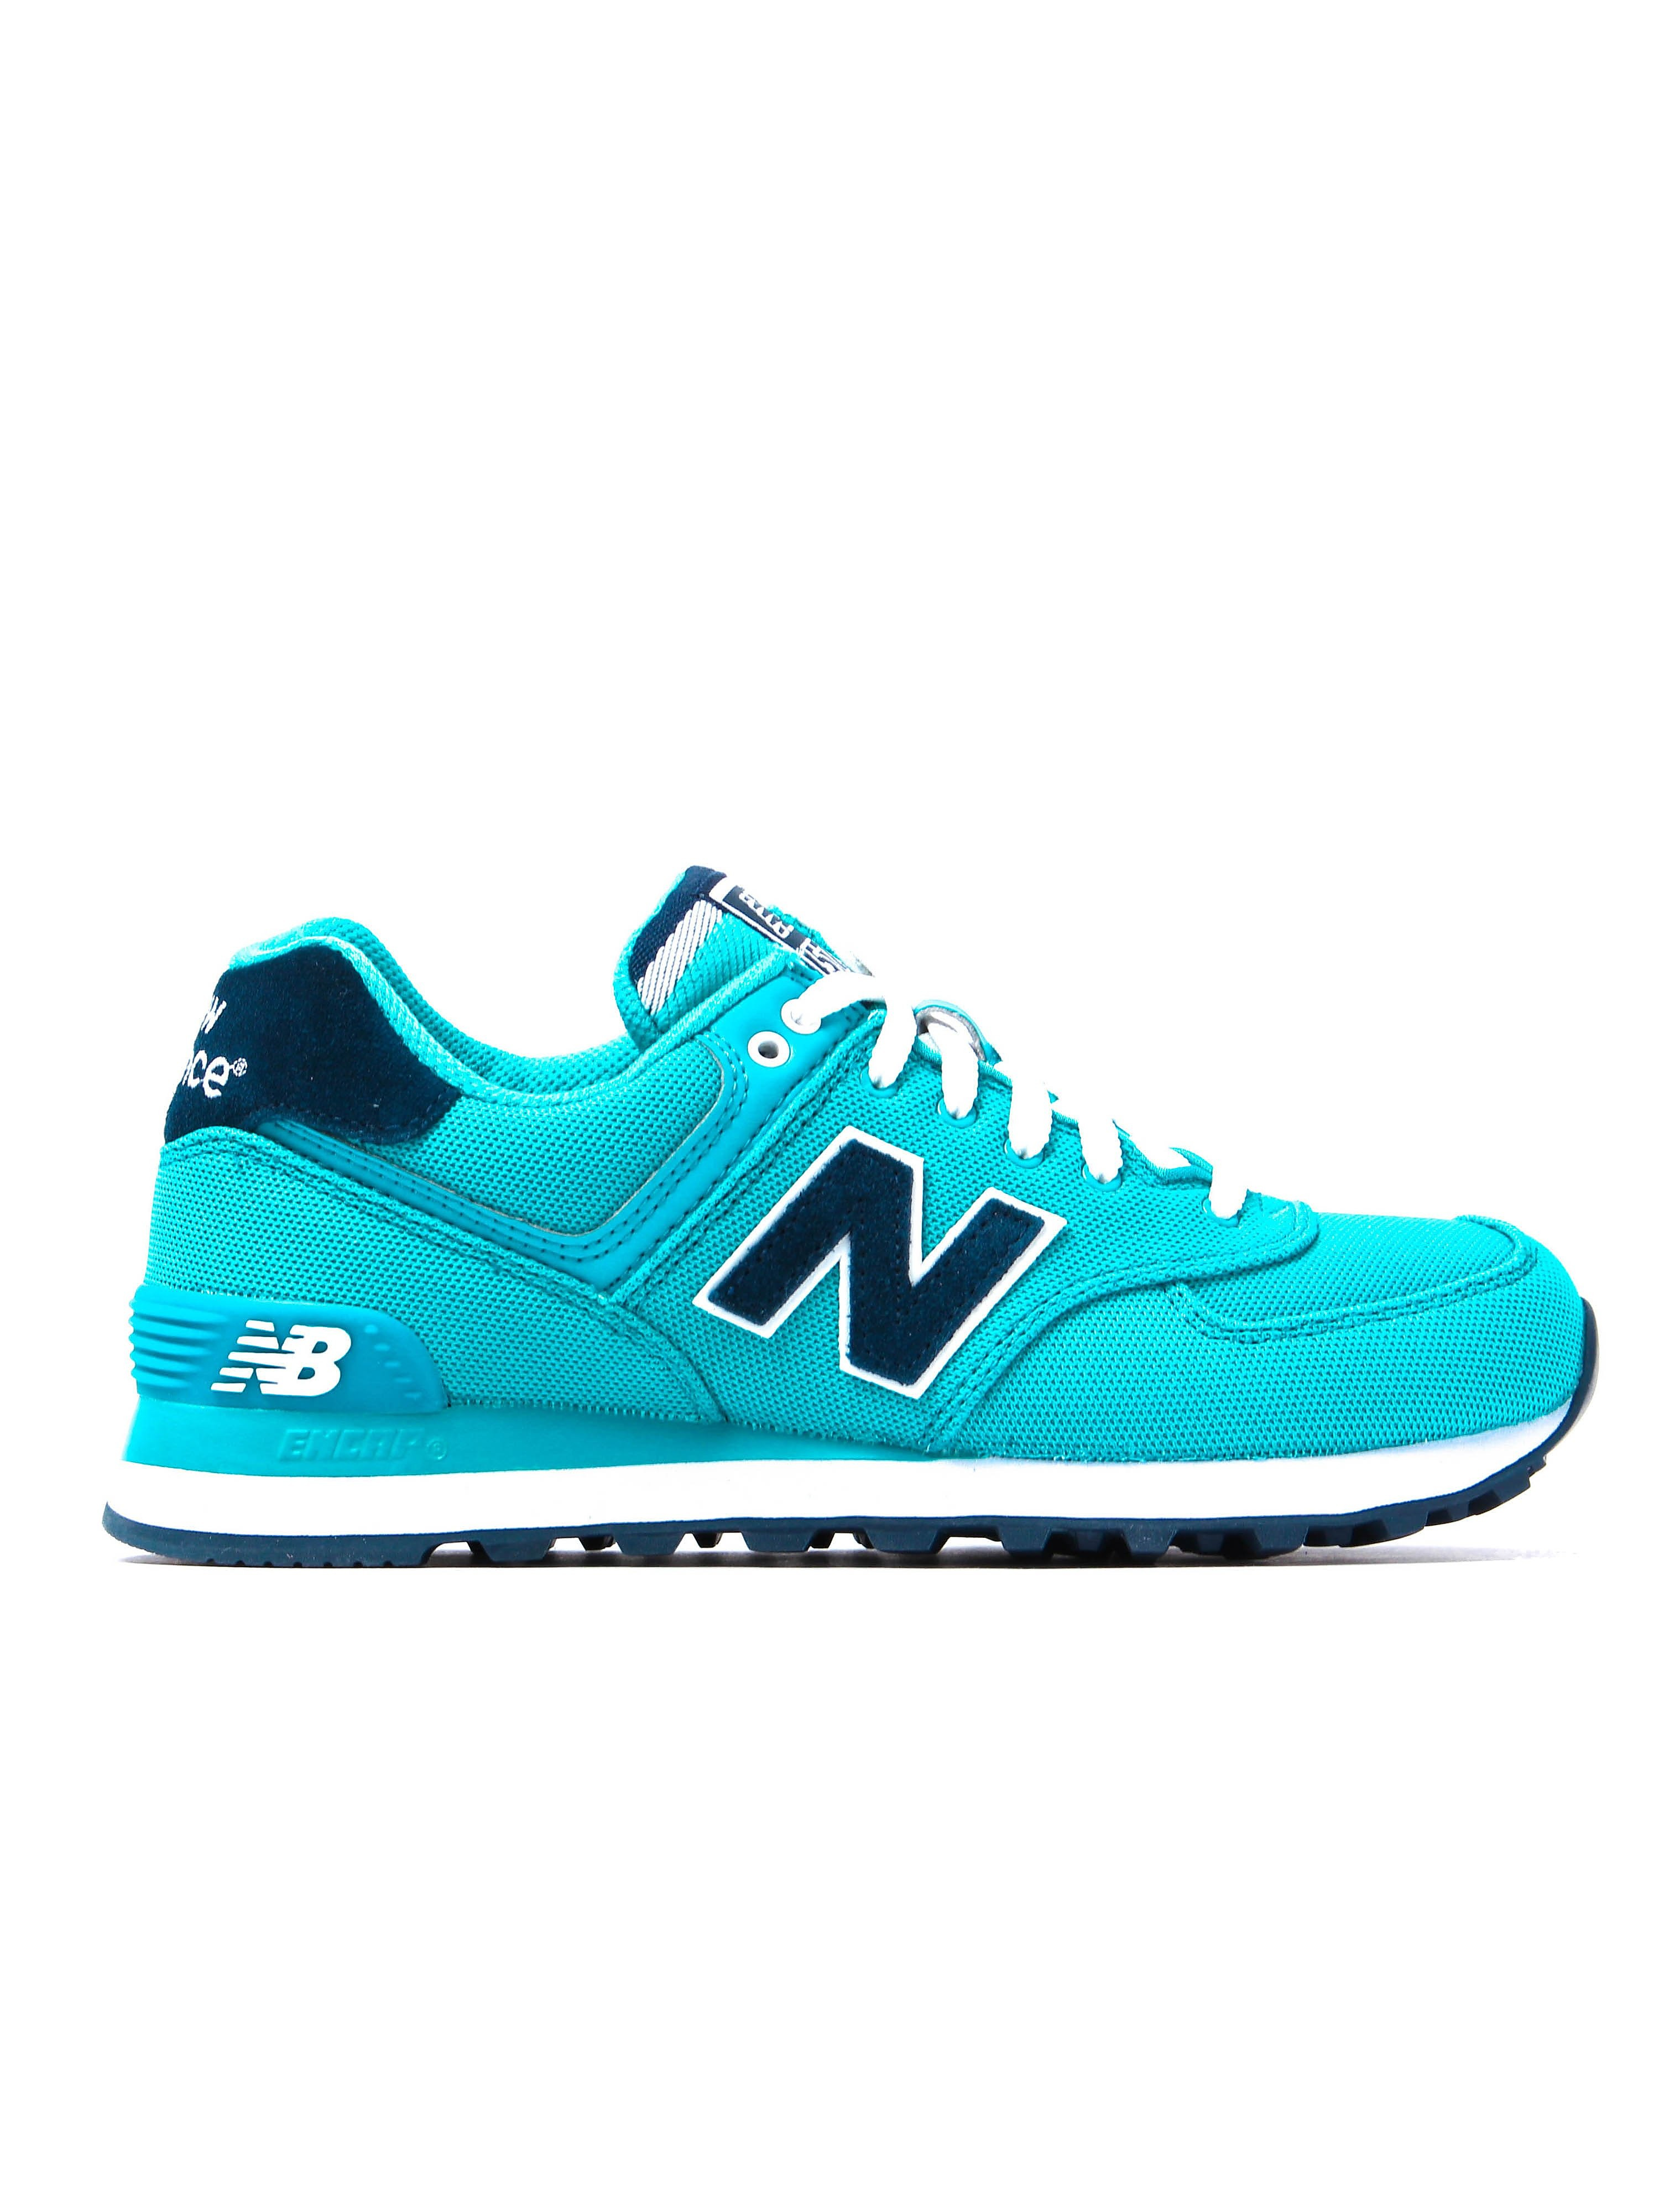 New Balance Women's 574 Polo Low Top Trainers - Turquoise